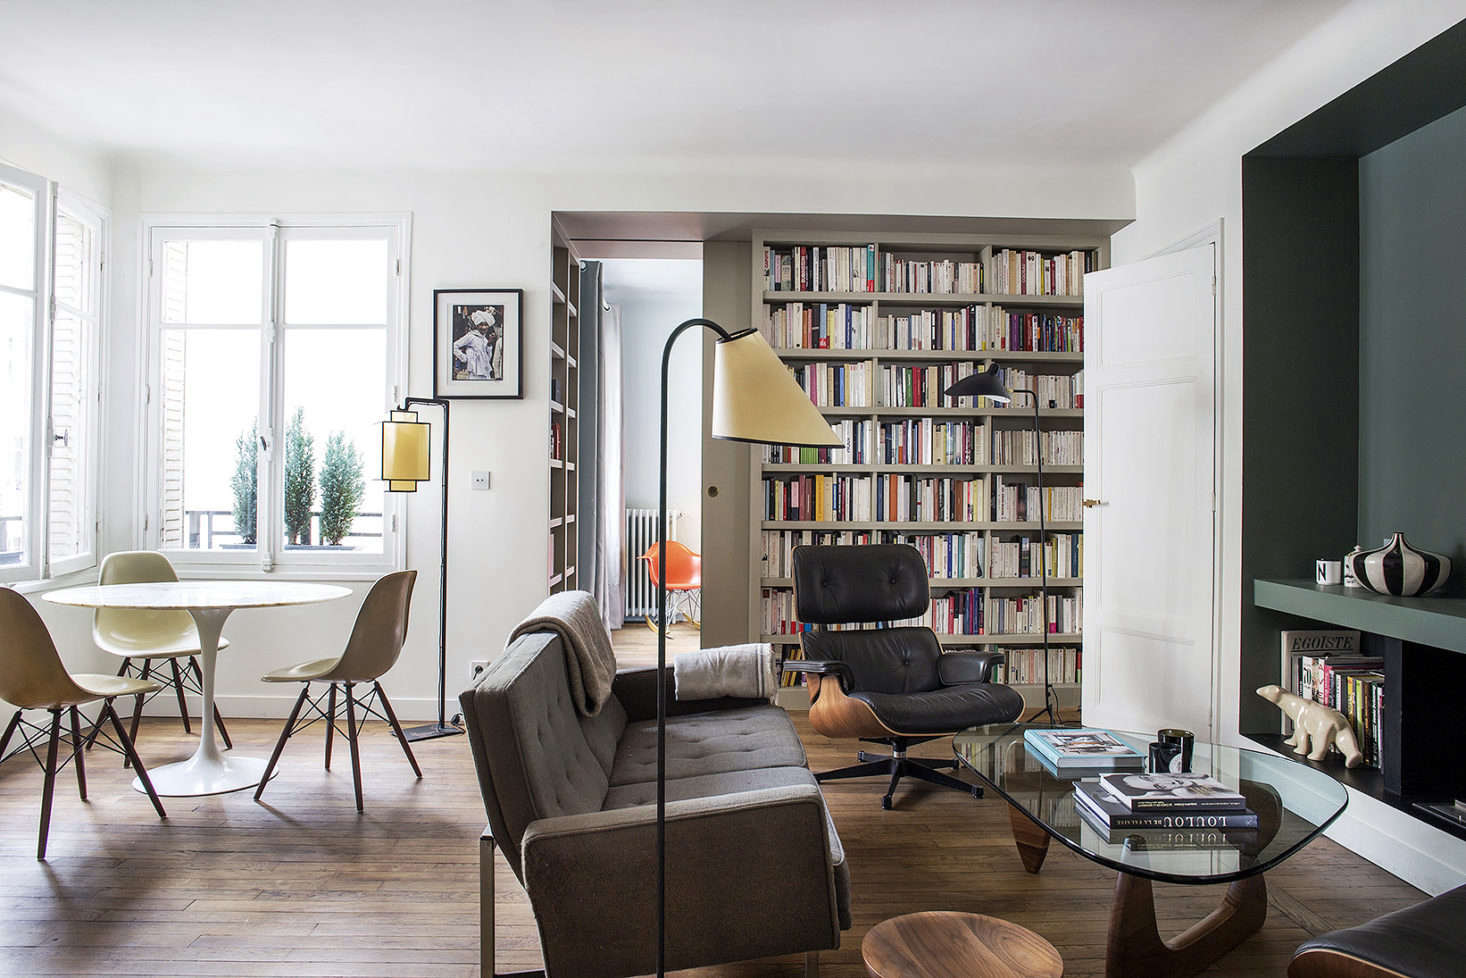 How to fit a dining table into a small living room? Neatly tucked into a & 9 Small-Space Ideas to Steal from a Tiny Paris Apartment